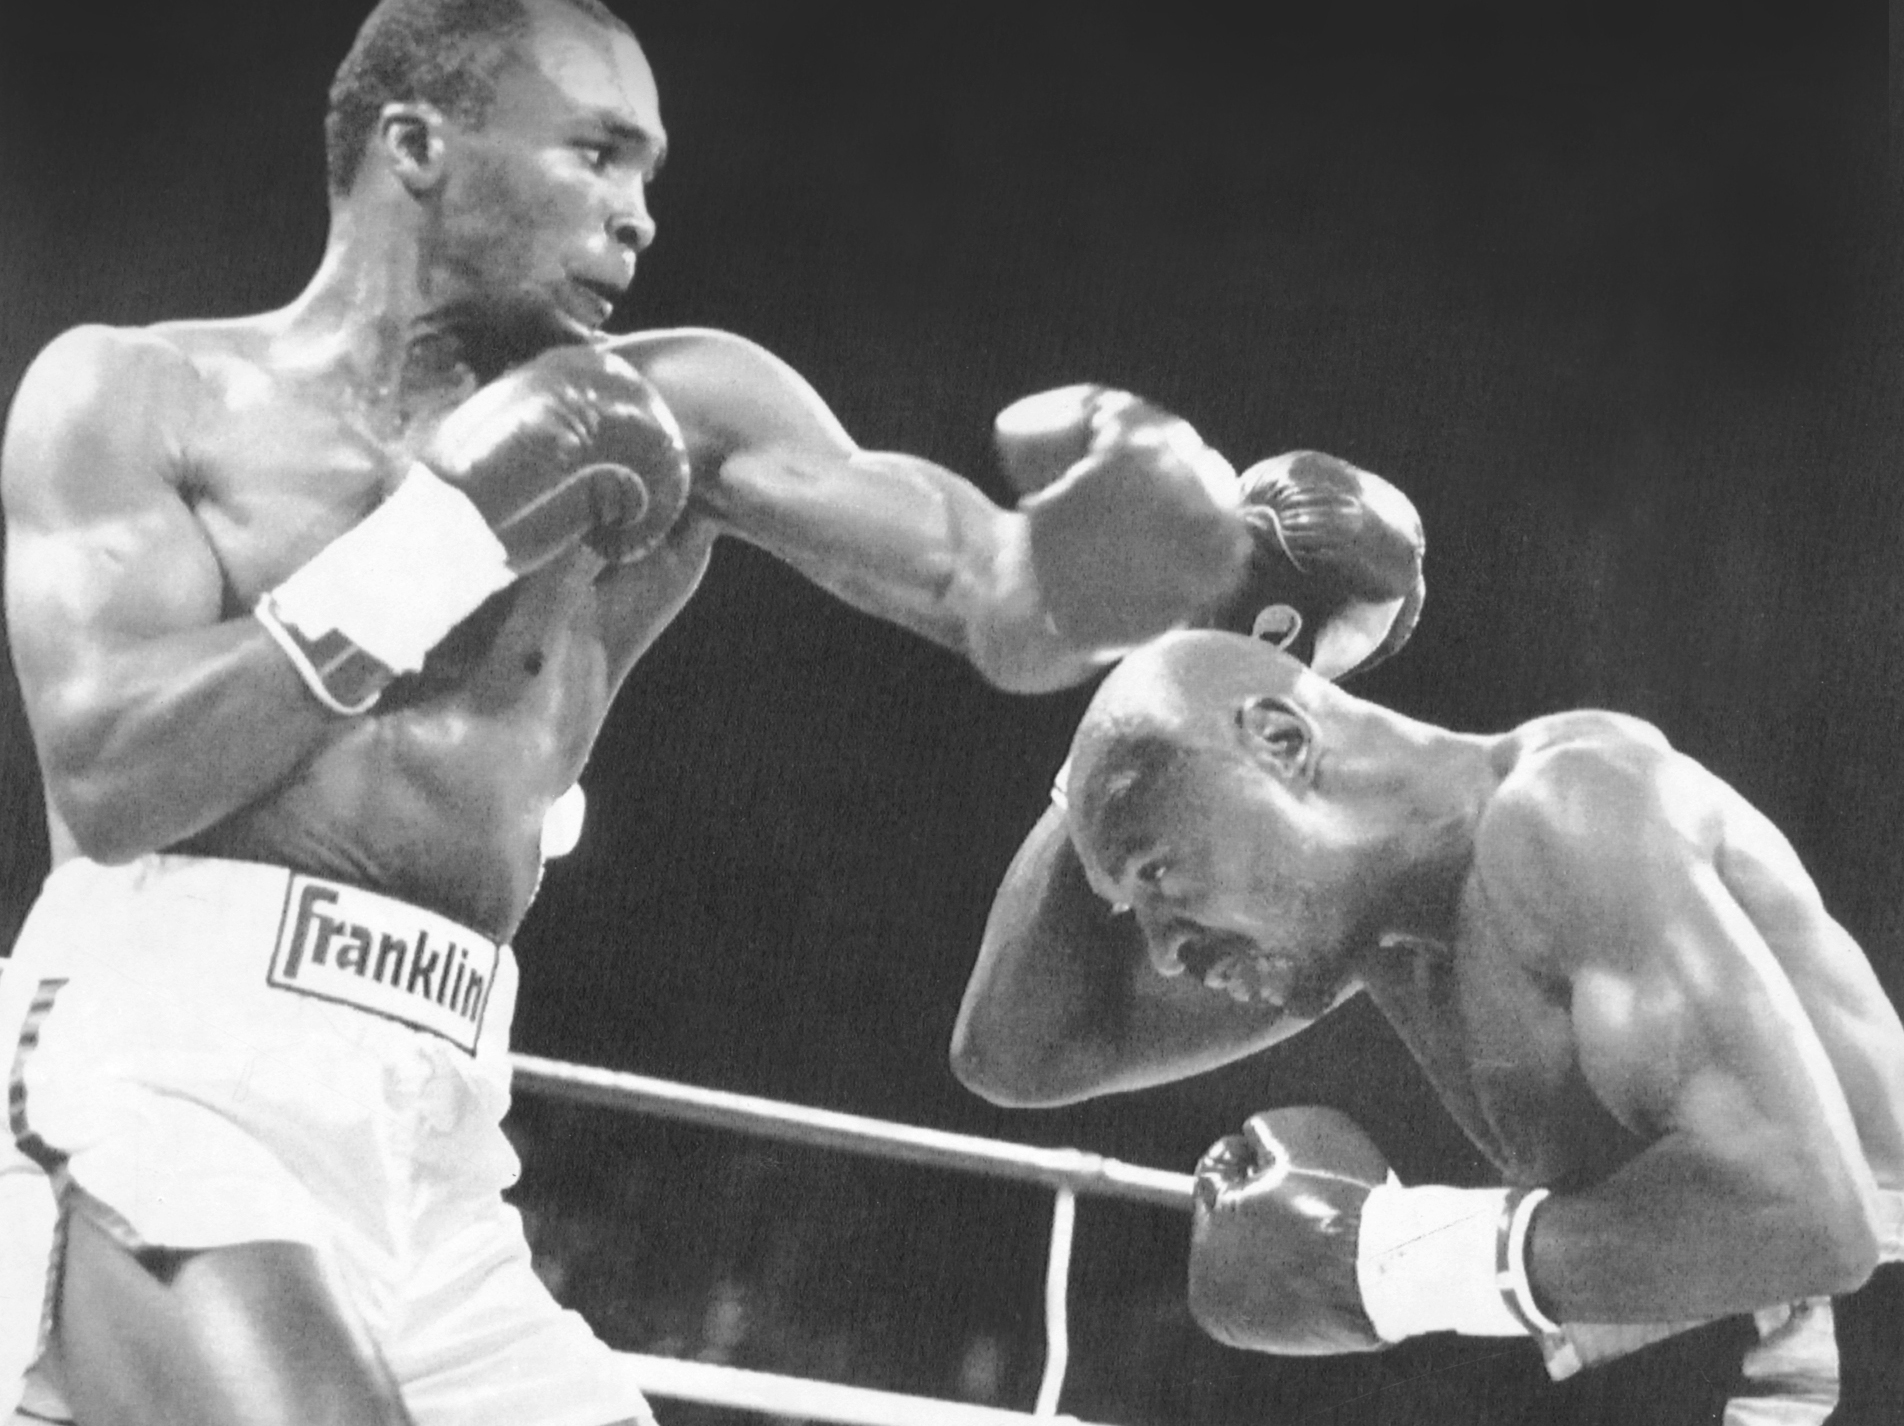 sugar ray leonard the greatest career the boxing world had produced Sugar ray leonard (1987) he only made a cameo appearance at middleweight but it was an oscar-winning performance leonard's 1987 upset of marvin hagler is arguably the finest comeback in boxing history.